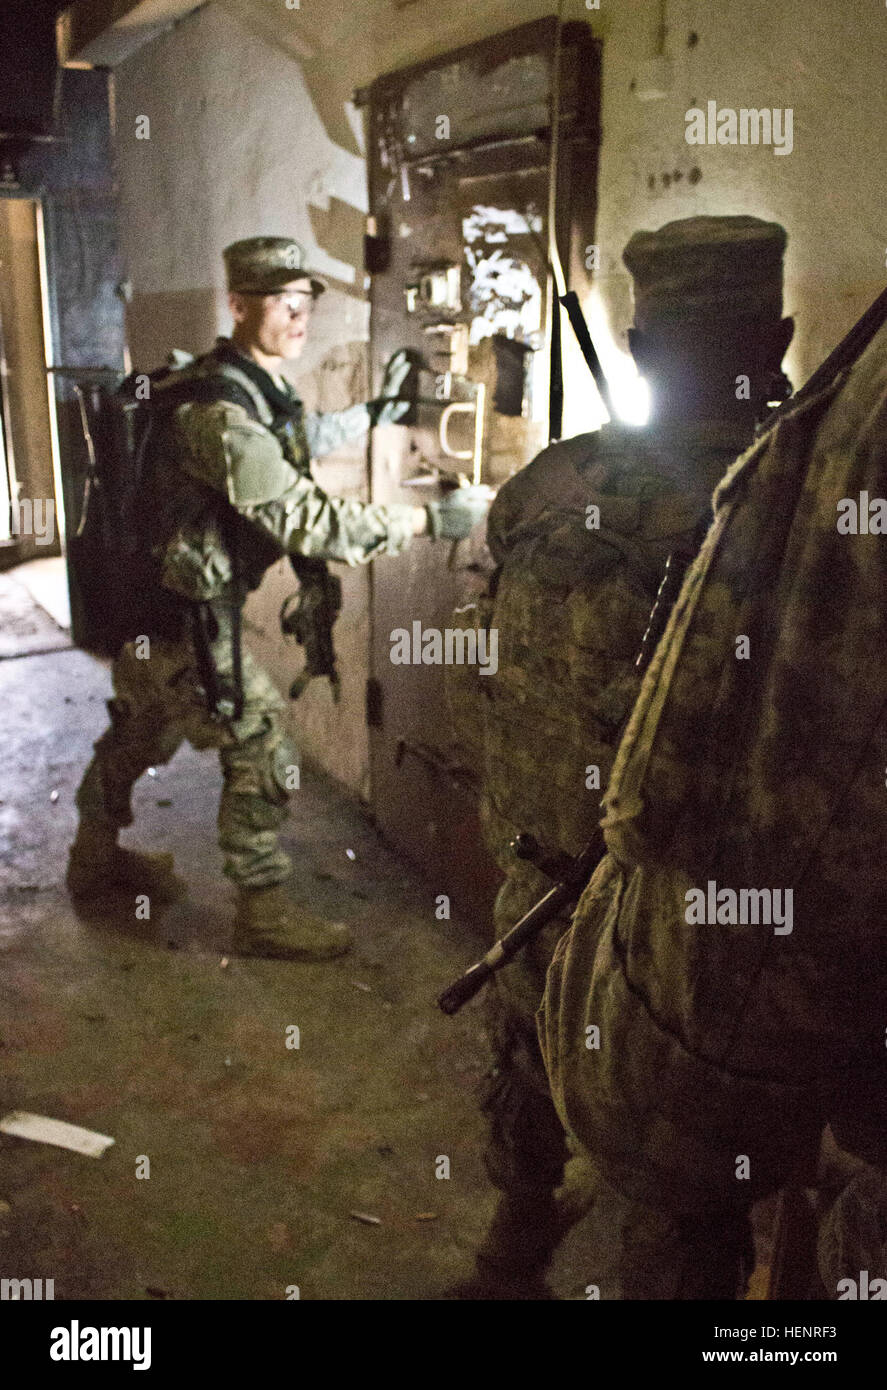 Army Pvt. Dustin M. Stechschulte, a Lima, Ohio, native serving as an infantryman in Company B, 2nd Battalion, 503rd Infantry Regiment, 173rd Airborne Brigade leads his team in breaching a cell inside an abandoned Soviet era prison during a rehearsal for a night raid mission held Sept. 5 at Rummu, Estonia. The raid was part of Steadfast Javelin II, a NATO exercise involving more than 2,000 troops from nine nations conducting various training missions across Estonia, Germany, Latvia, Lithuania and Poland. The exercise focuses on increasing interoperability and synchronizing complex operations be Stock Photo